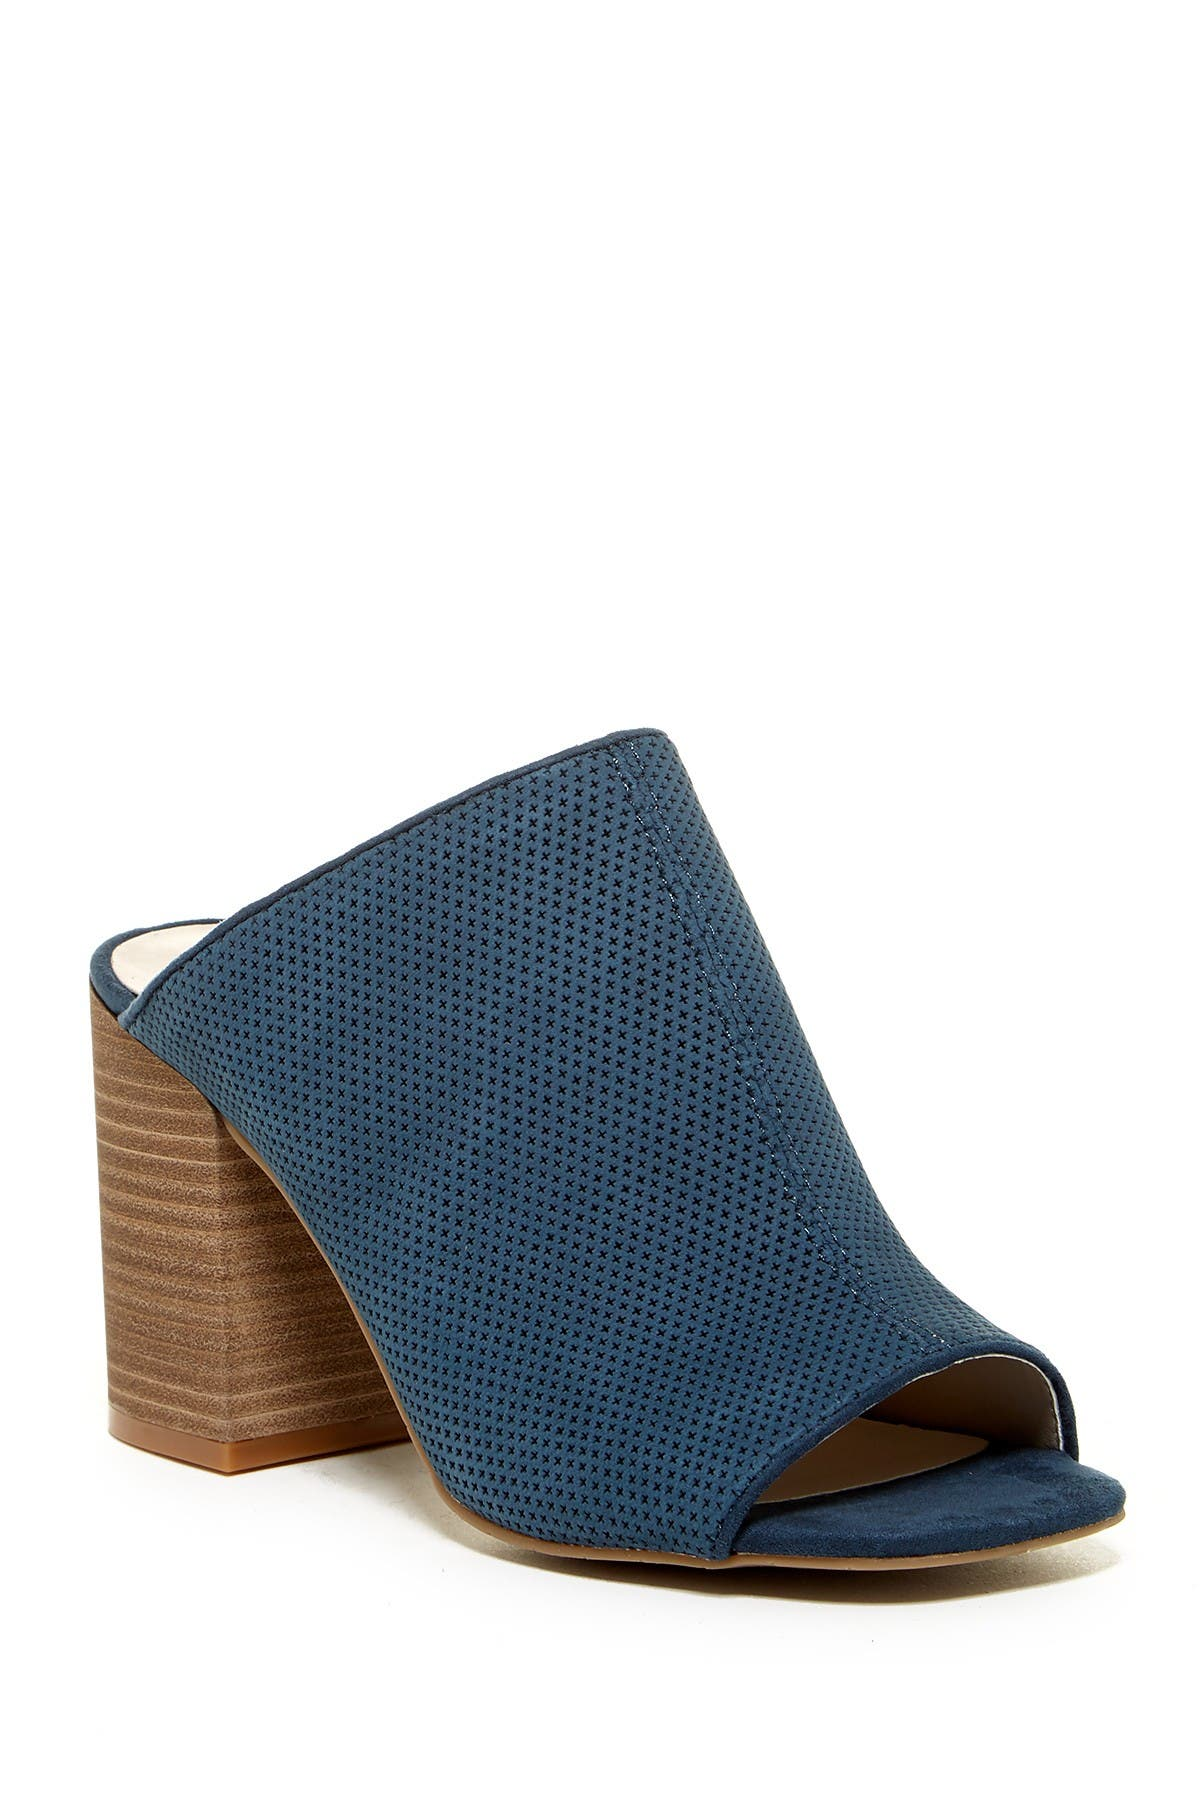 Image of Kenneth Cole Reaction Top Notch Perforated Mule